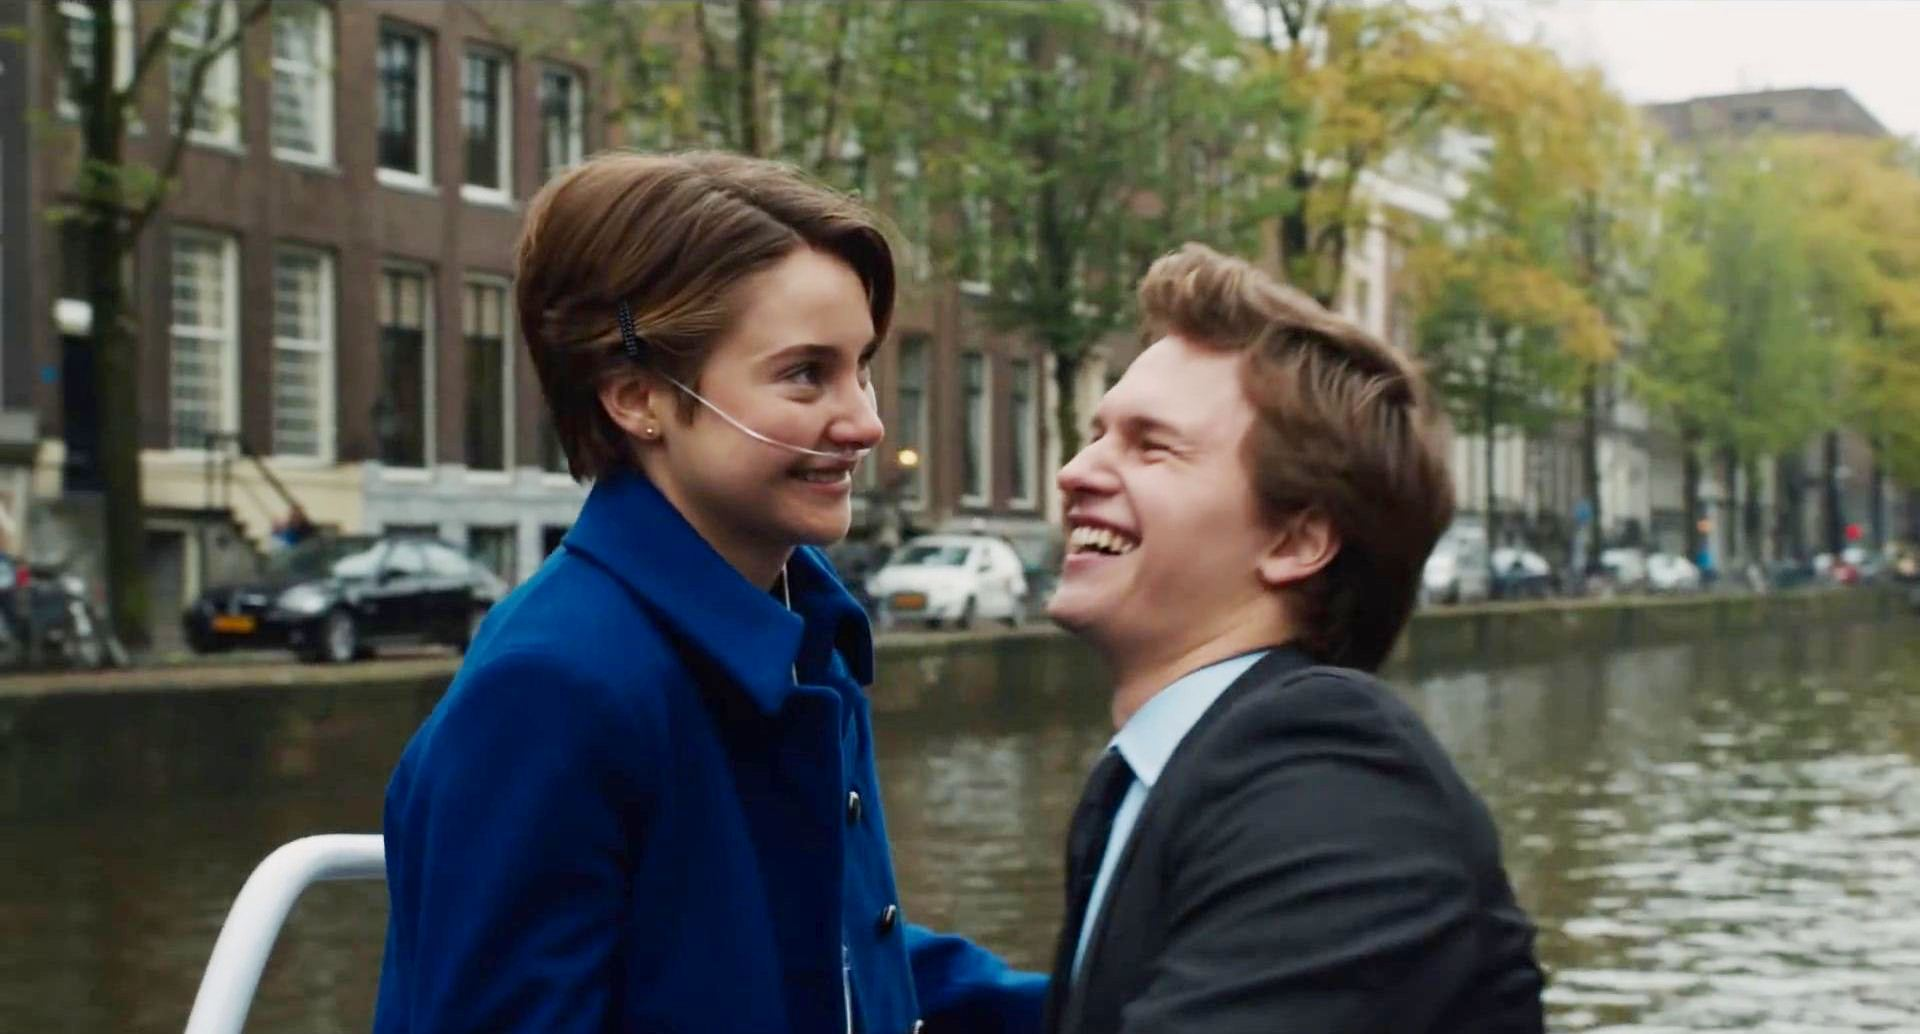 https://i1.wp.com/www.thehoya.com/wp-content/uploads/2014/06/the-fault-in-our-stars-movie-wallpaper-5.jpg